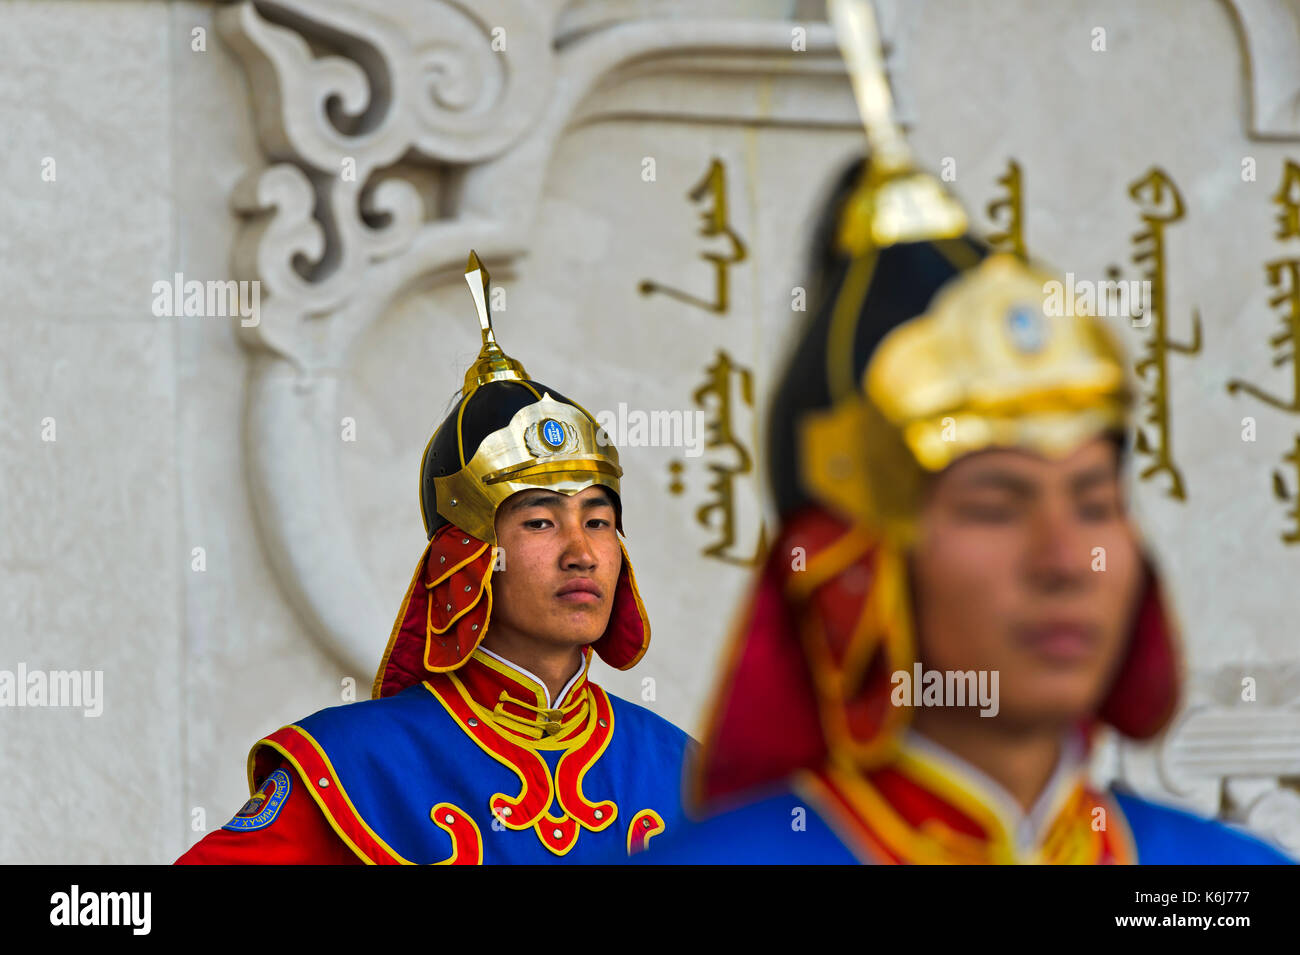 Guardsman of the Mongolian Armed Forces Honorary Guard in traditional uniform, Ulaanbaatar, Mongolia - Stock Image